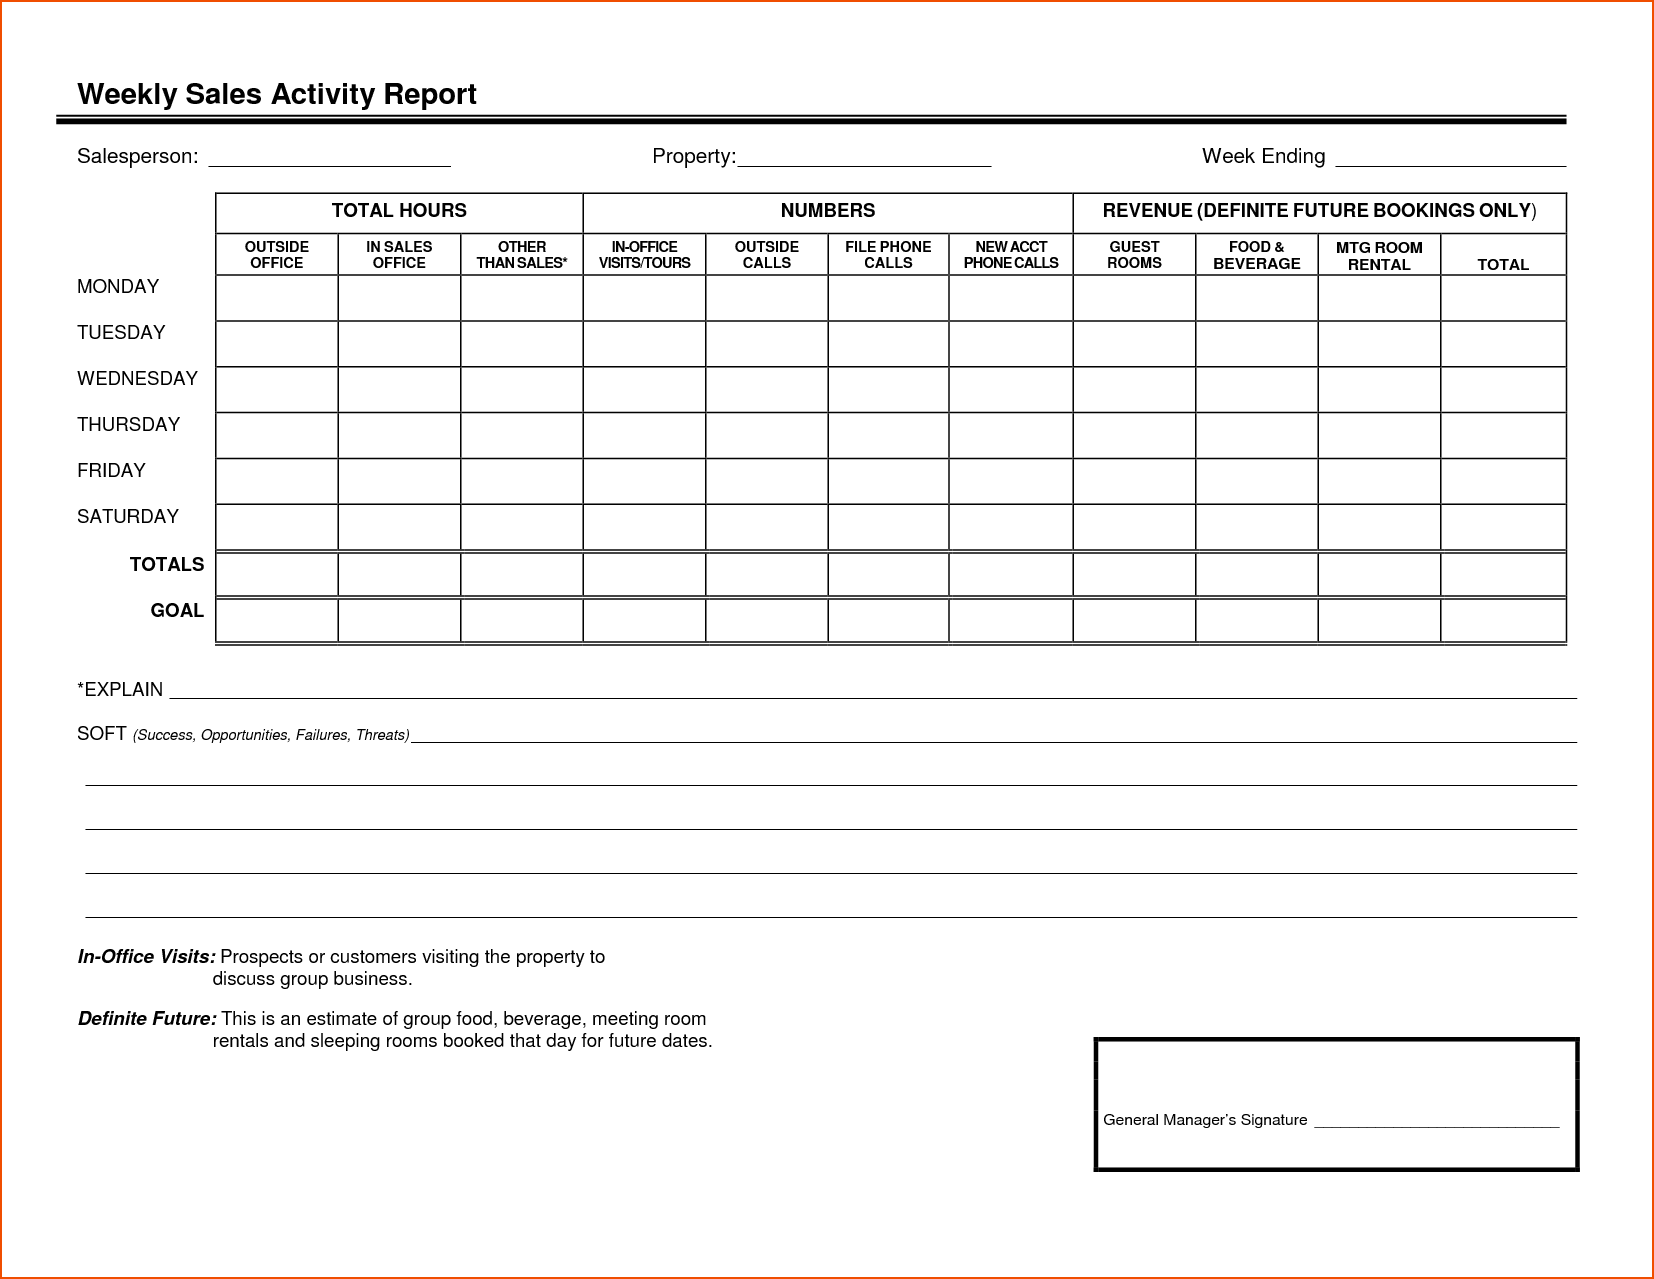 Sales Meeting Report Template and Monthly Sales Activity Report Template